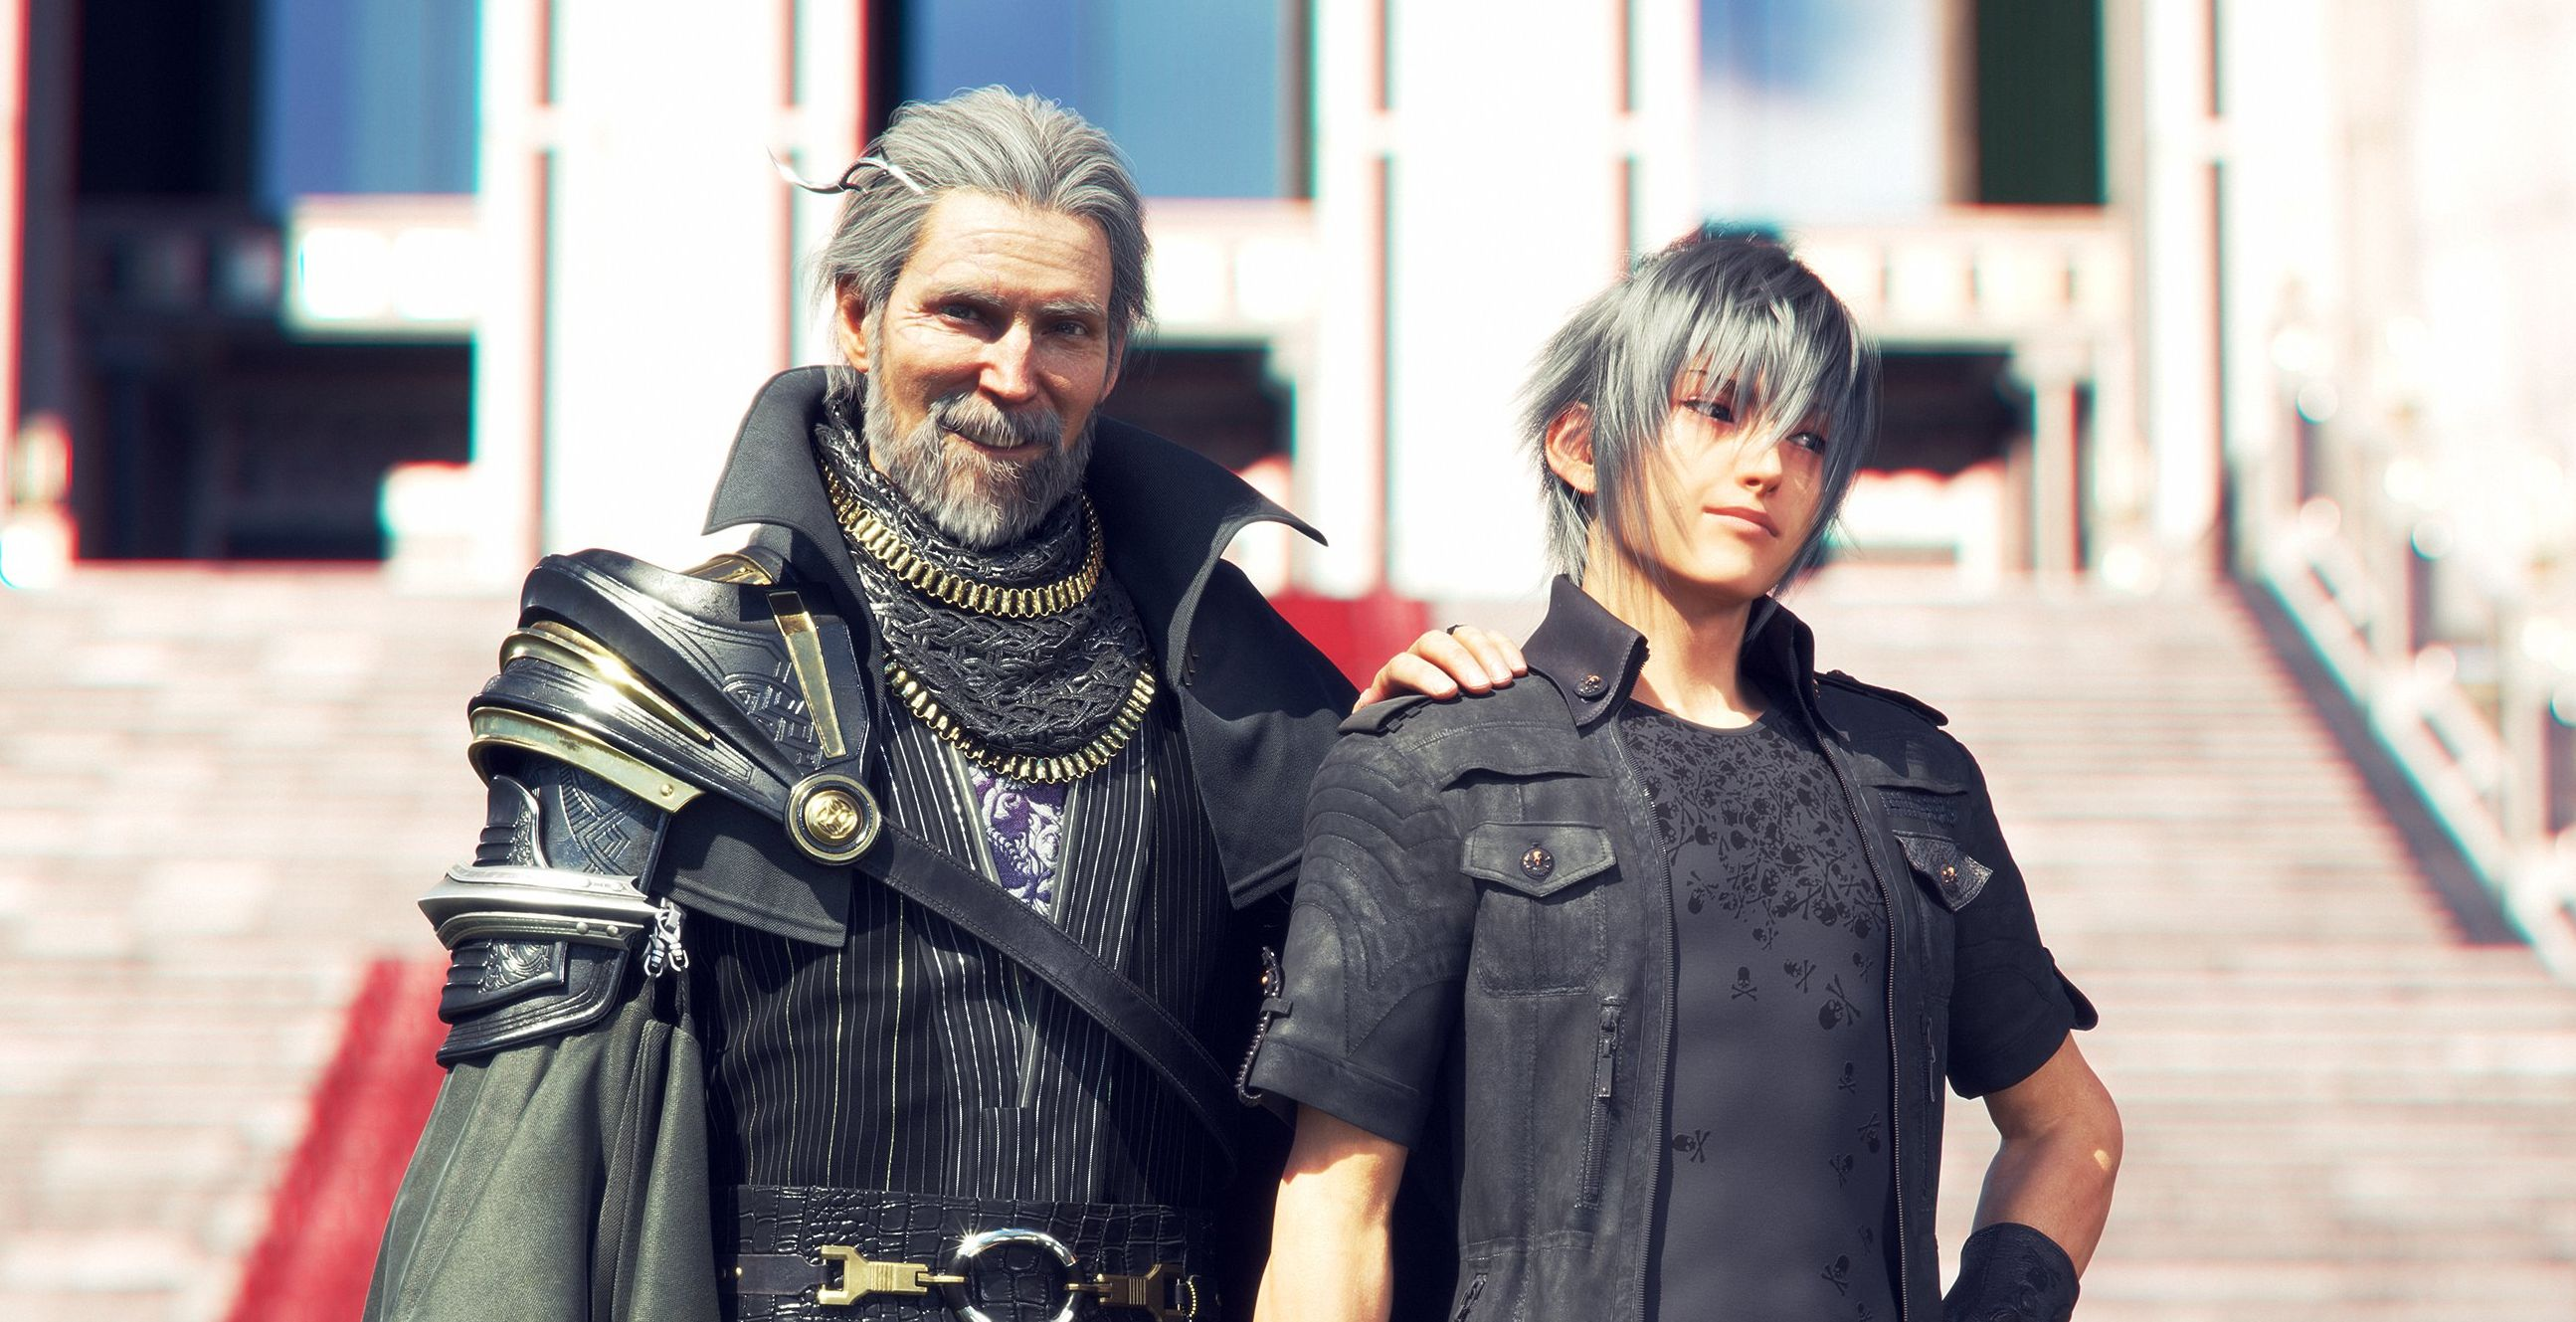 Final Fantasy XV Gets Adorable Pictures Of Noctis And